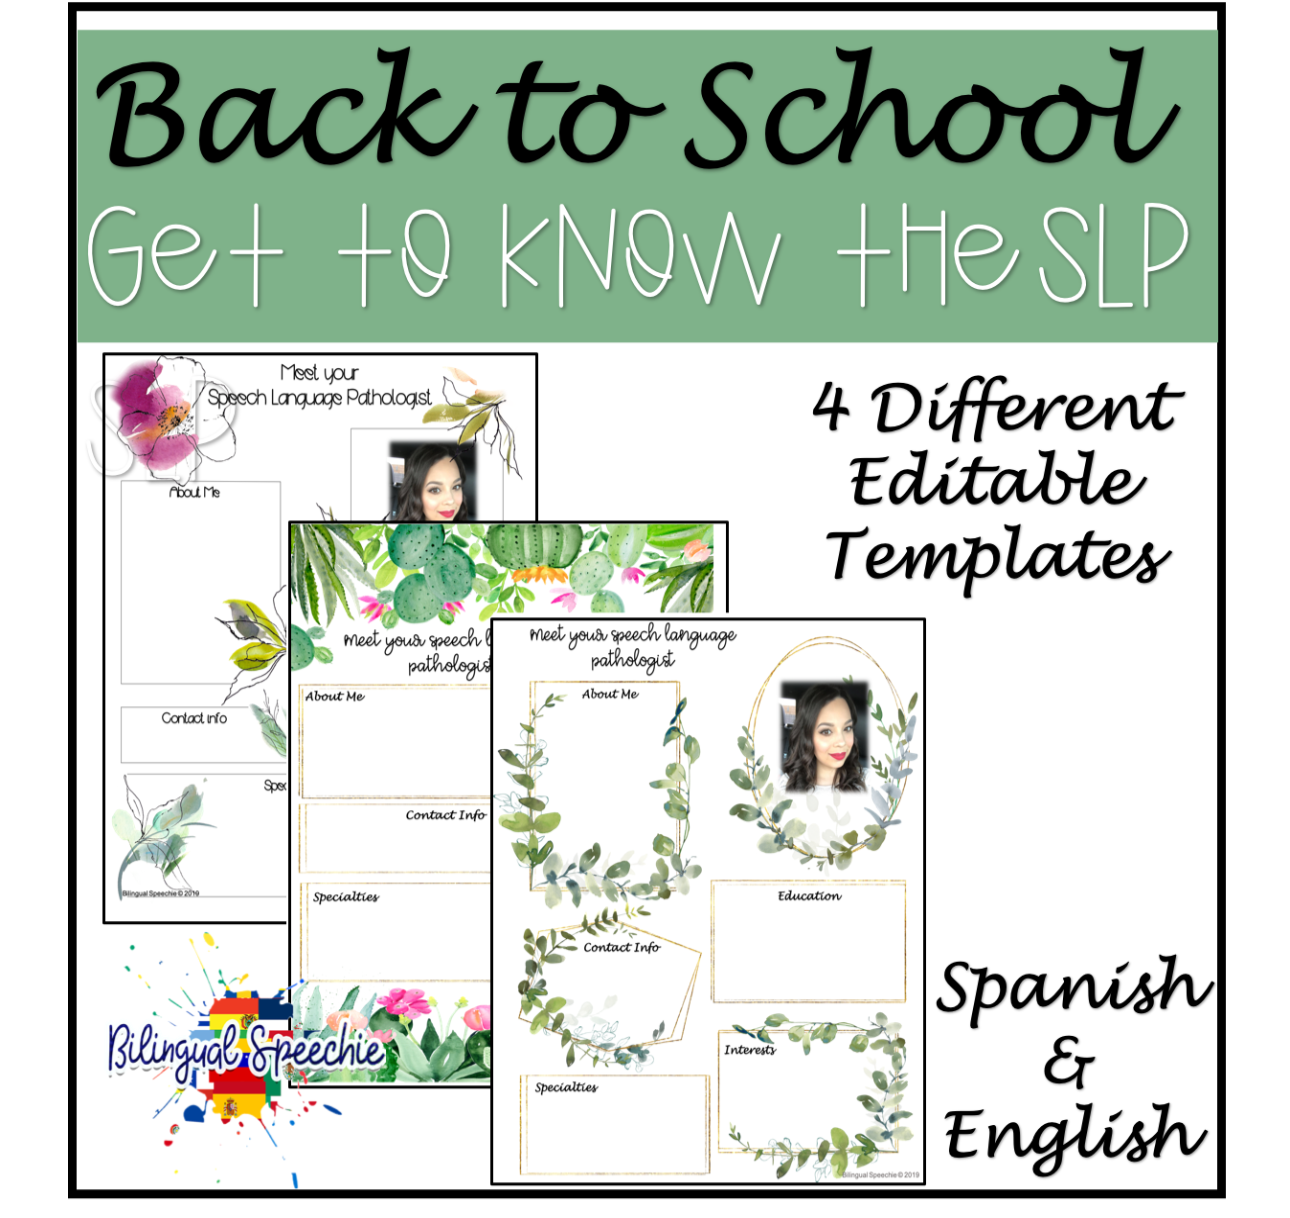 Meet the Speech Therapist | EDITABLE | Spanish & English